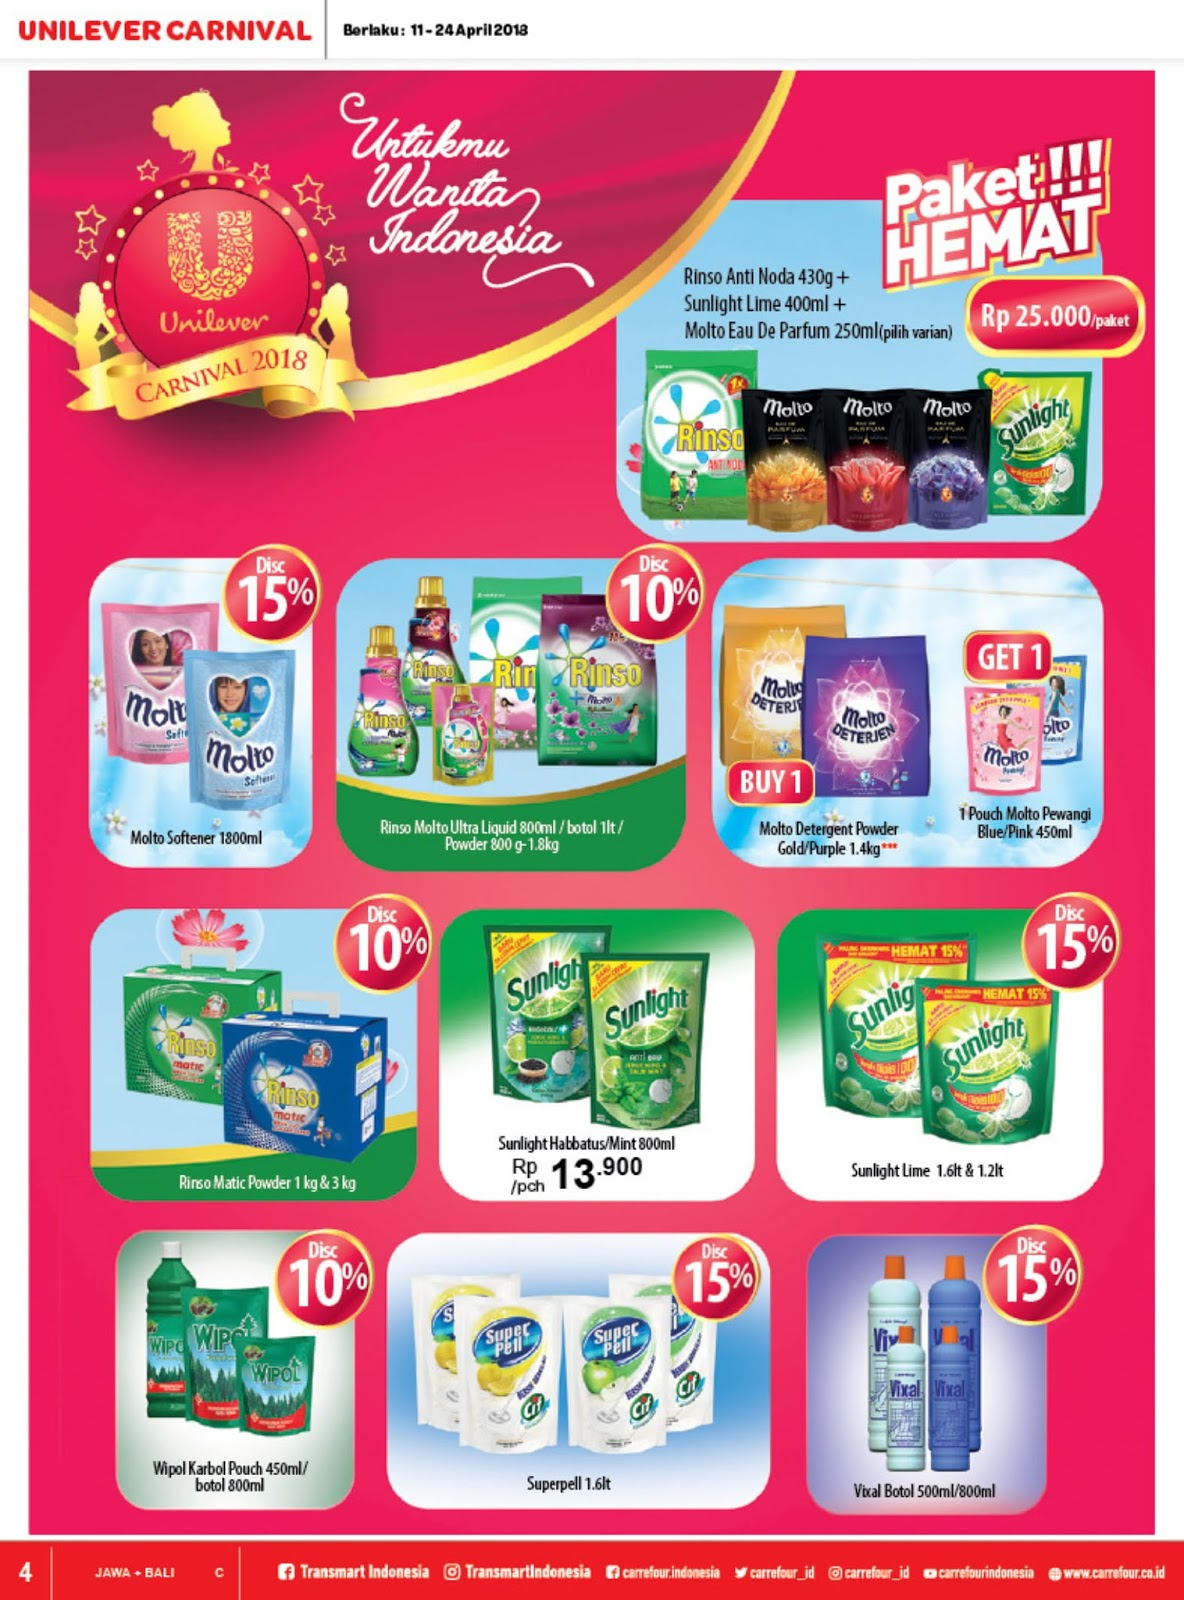 Katalog Promo Carrefour Terbaru Periode 11 24 April 2018 Info Voucher Carefur